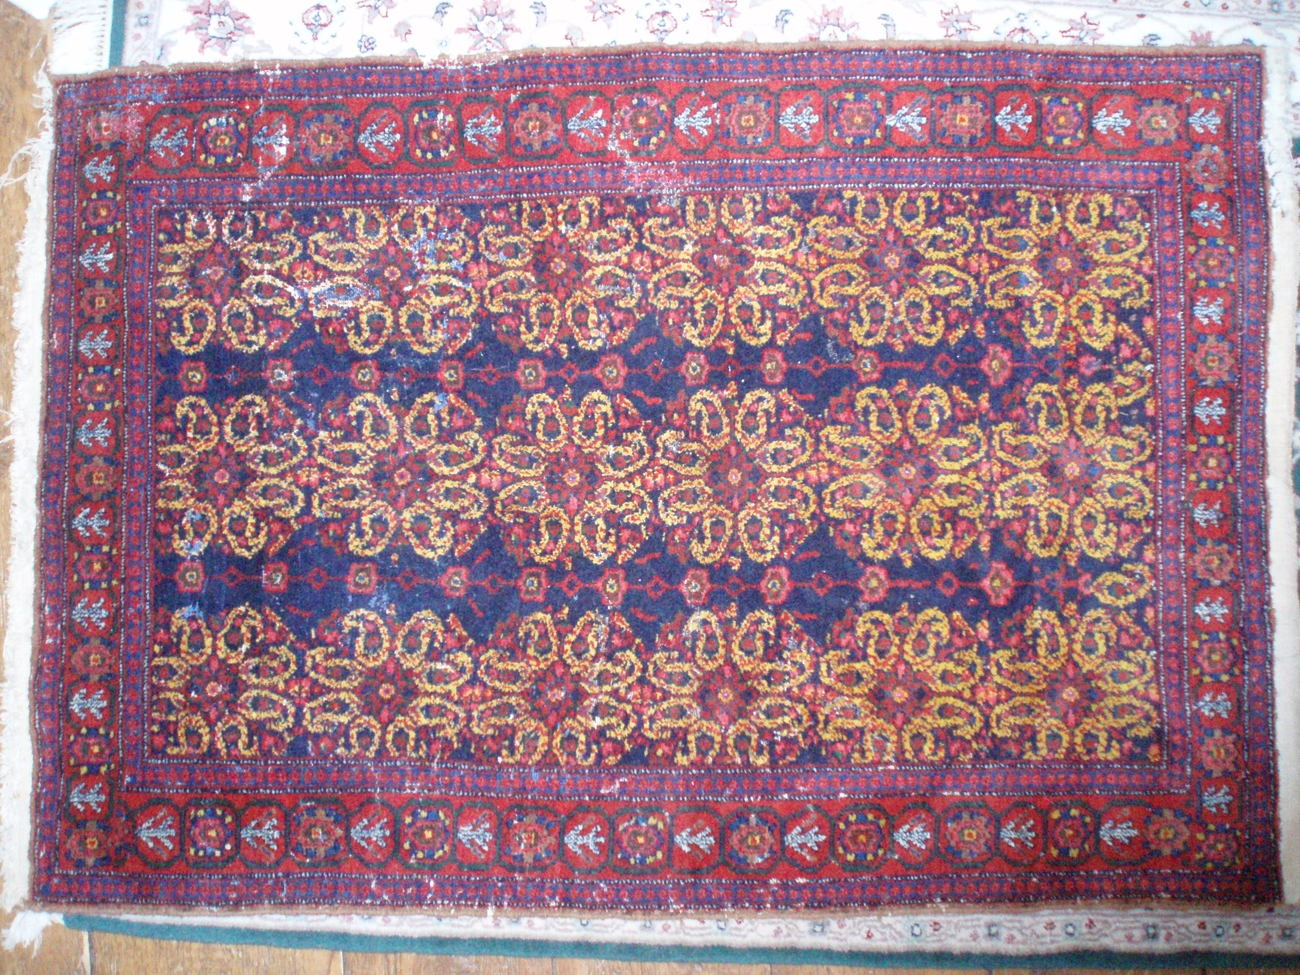 Iranian Persian Oriental rug 40 x 58  antique red navy gold